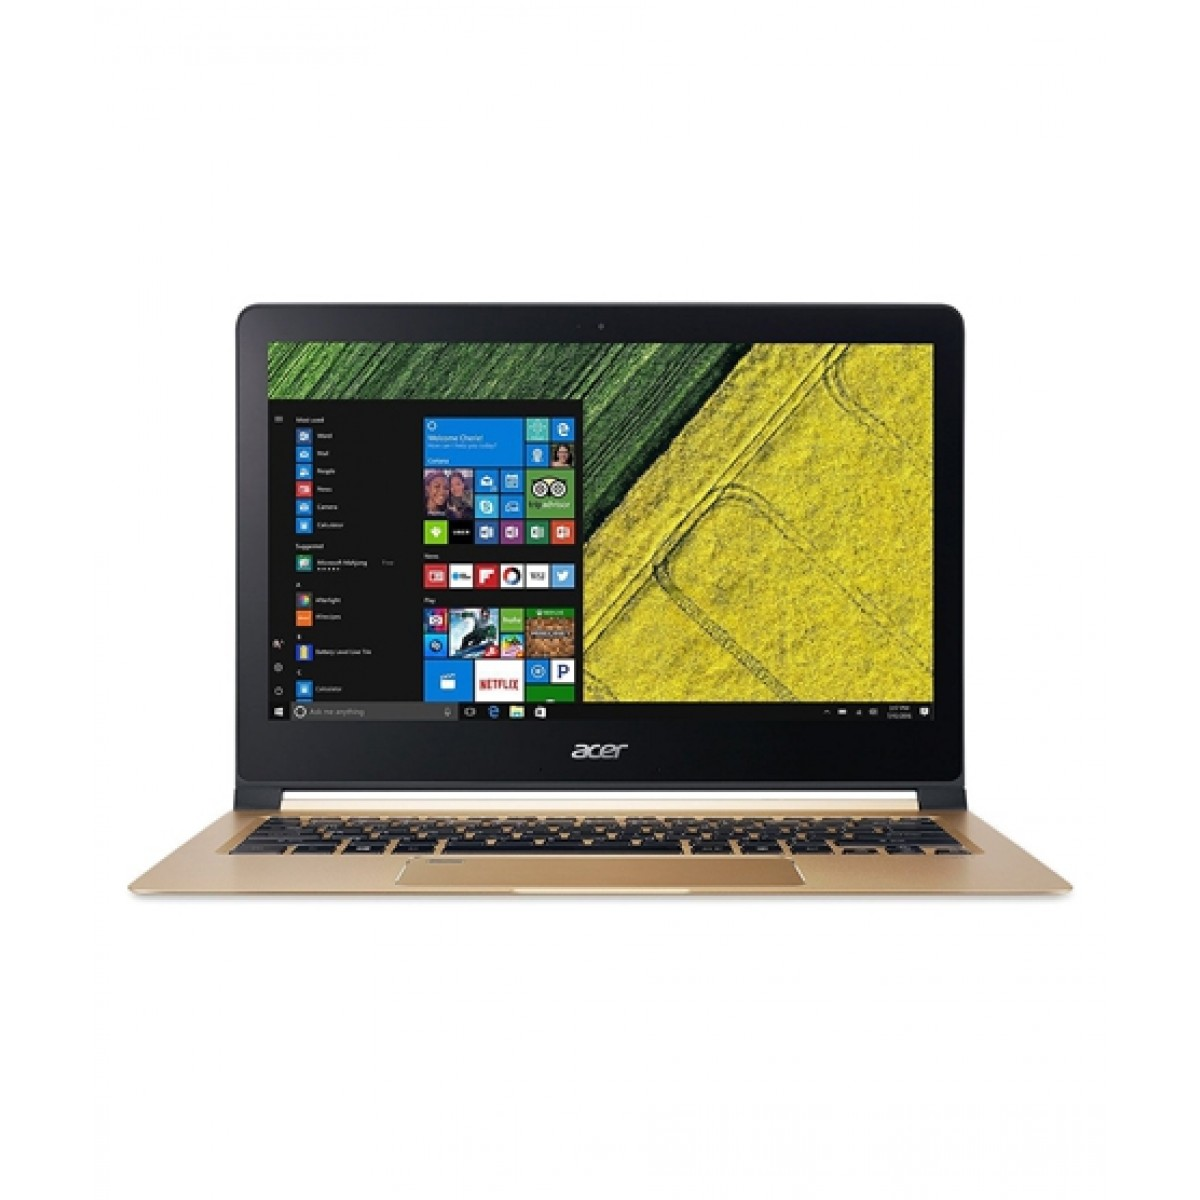 "Acer Swift 7 13.3"" Core i7 7th Gen 512GB 8GB Laptop Luxury Gold (SF713-51-M51W)"